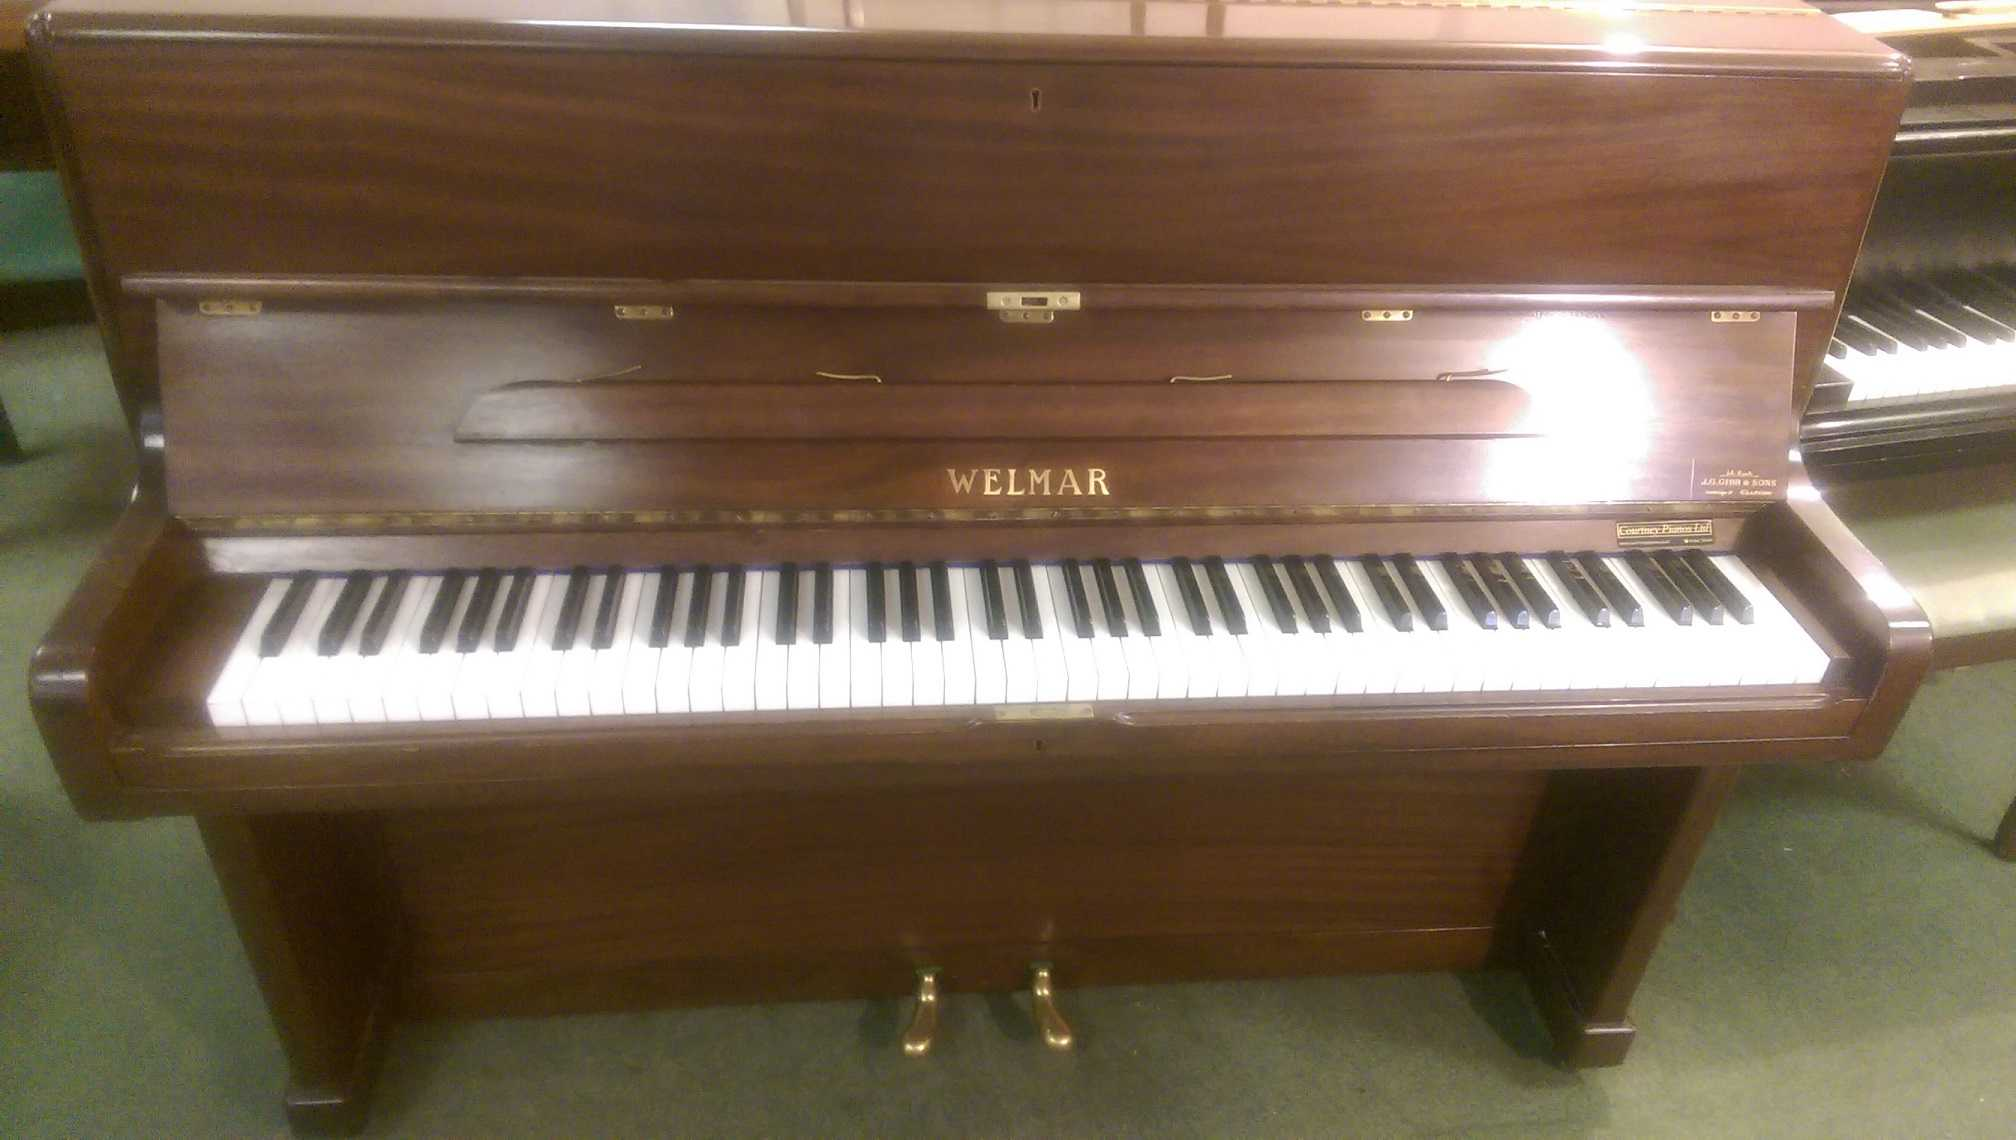 Welmar Upright Piano A2 63011